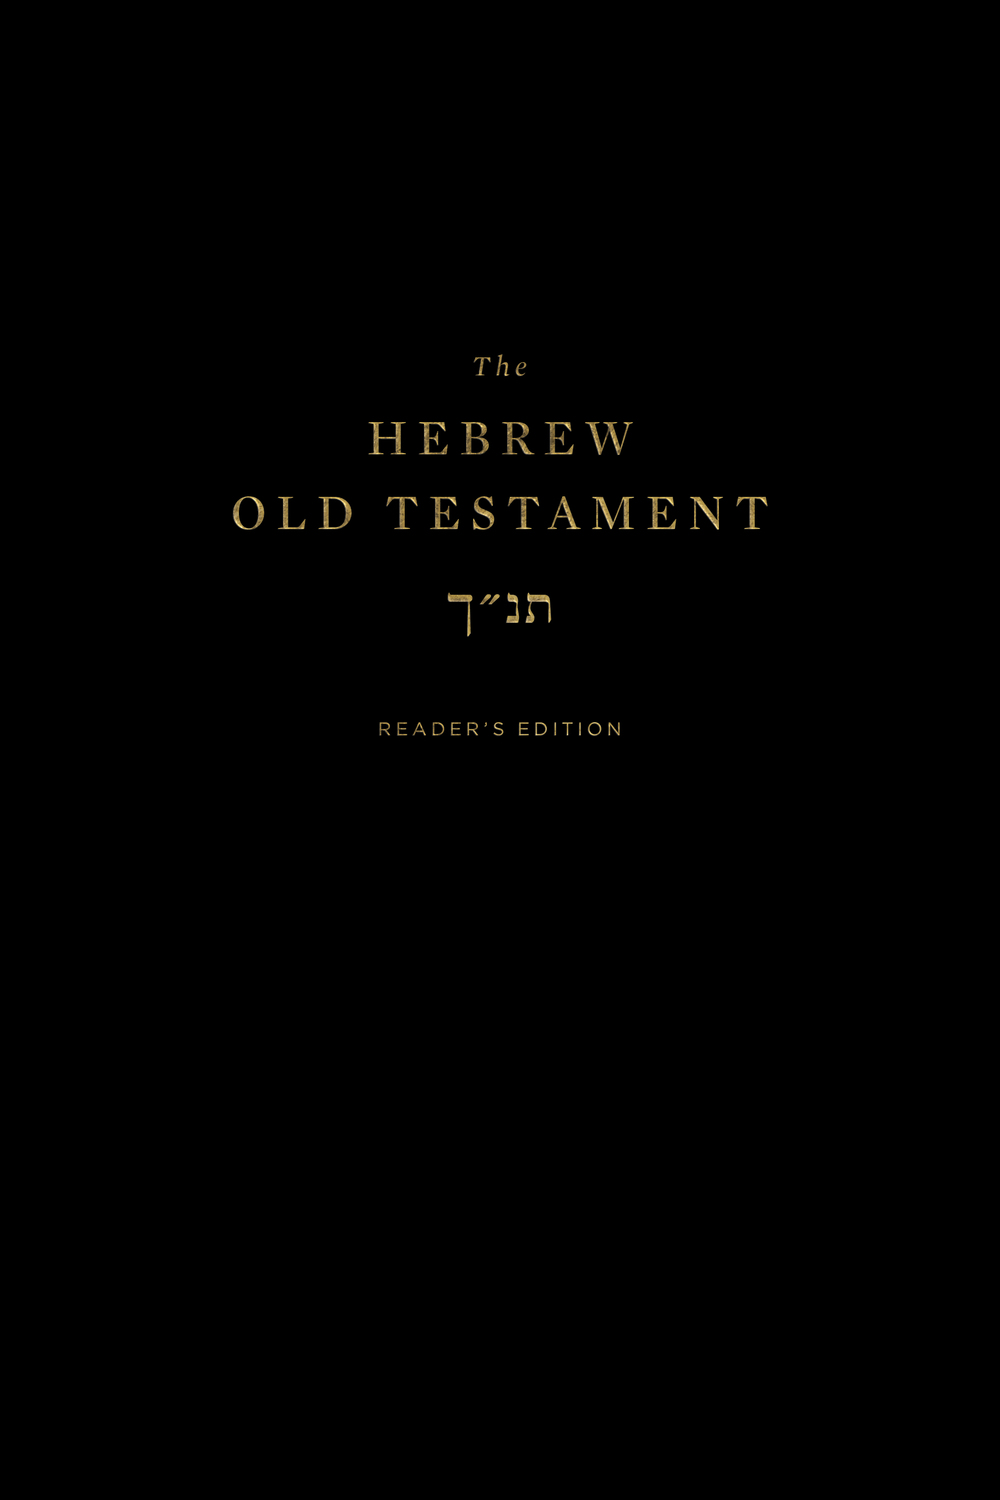 The Hebrew Old Testament, Reader's Edition